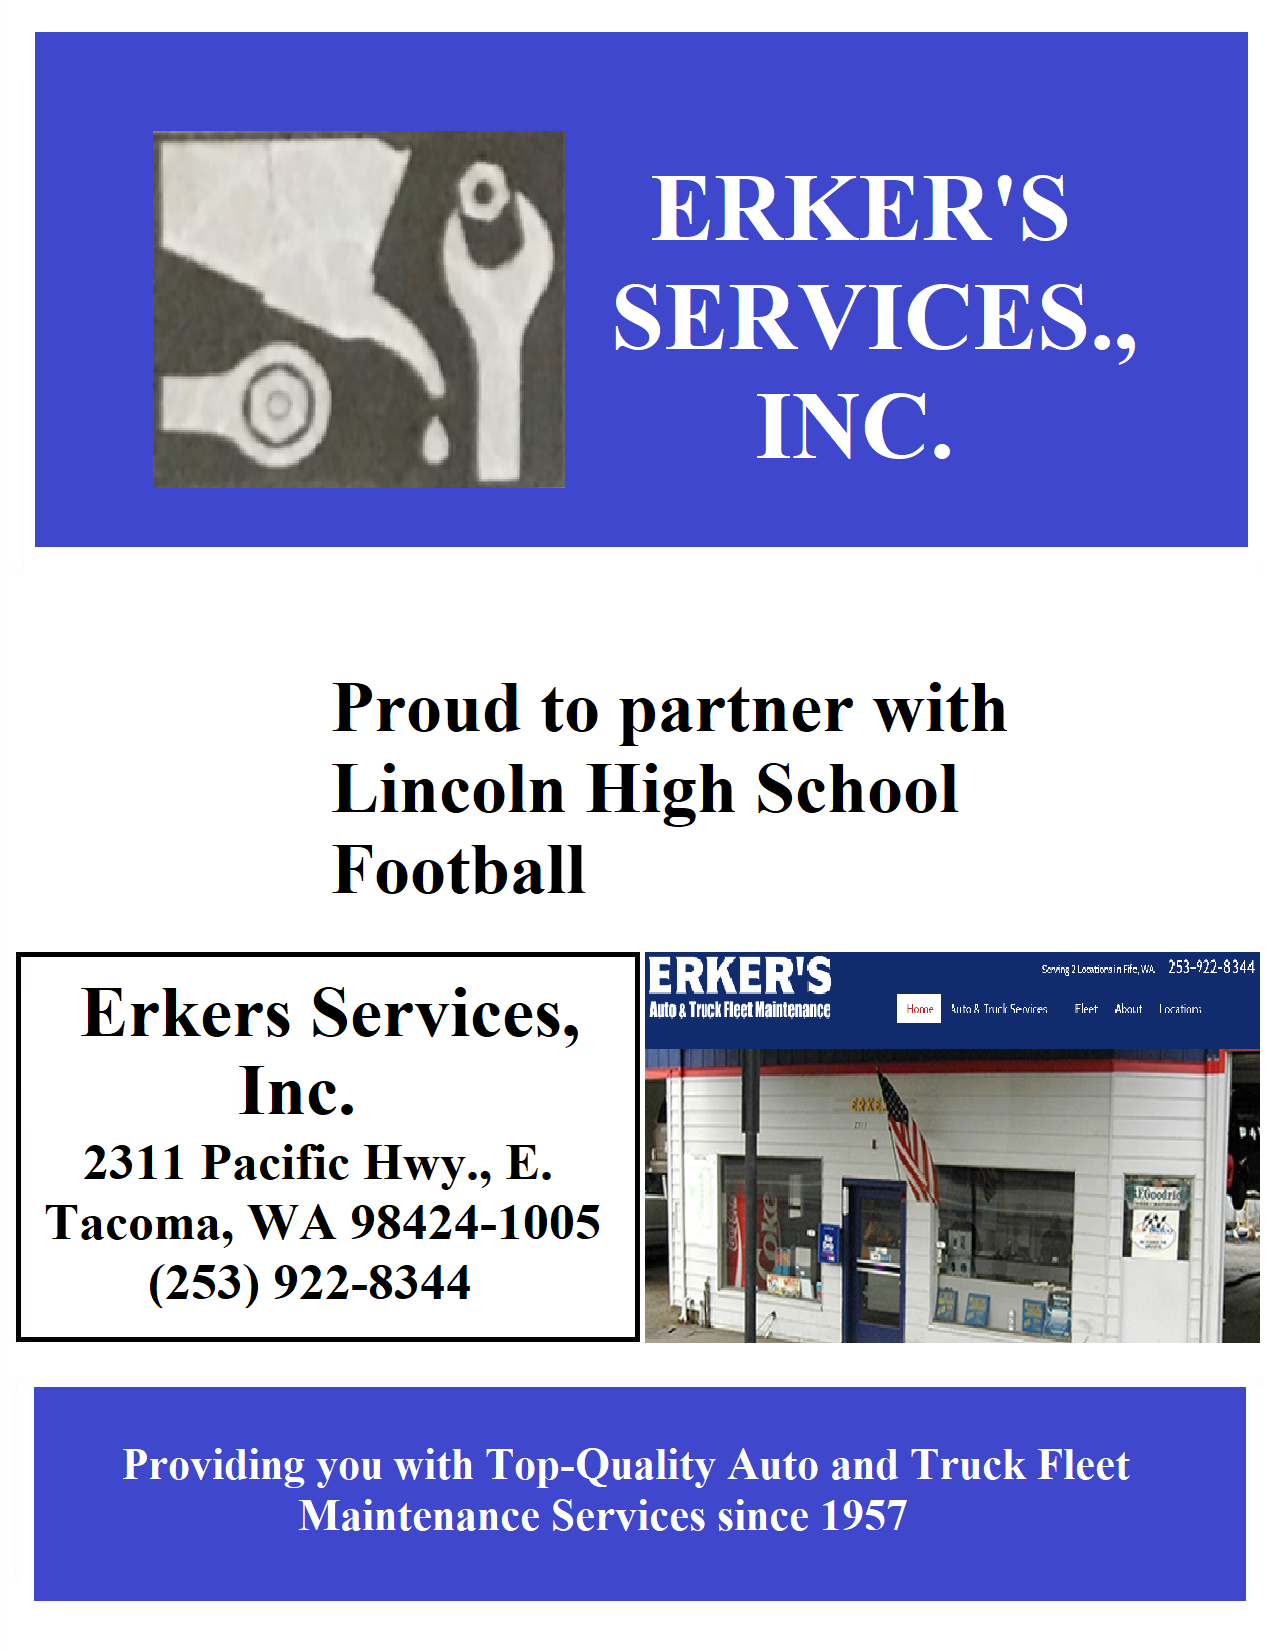 Erker's Services, Inc.